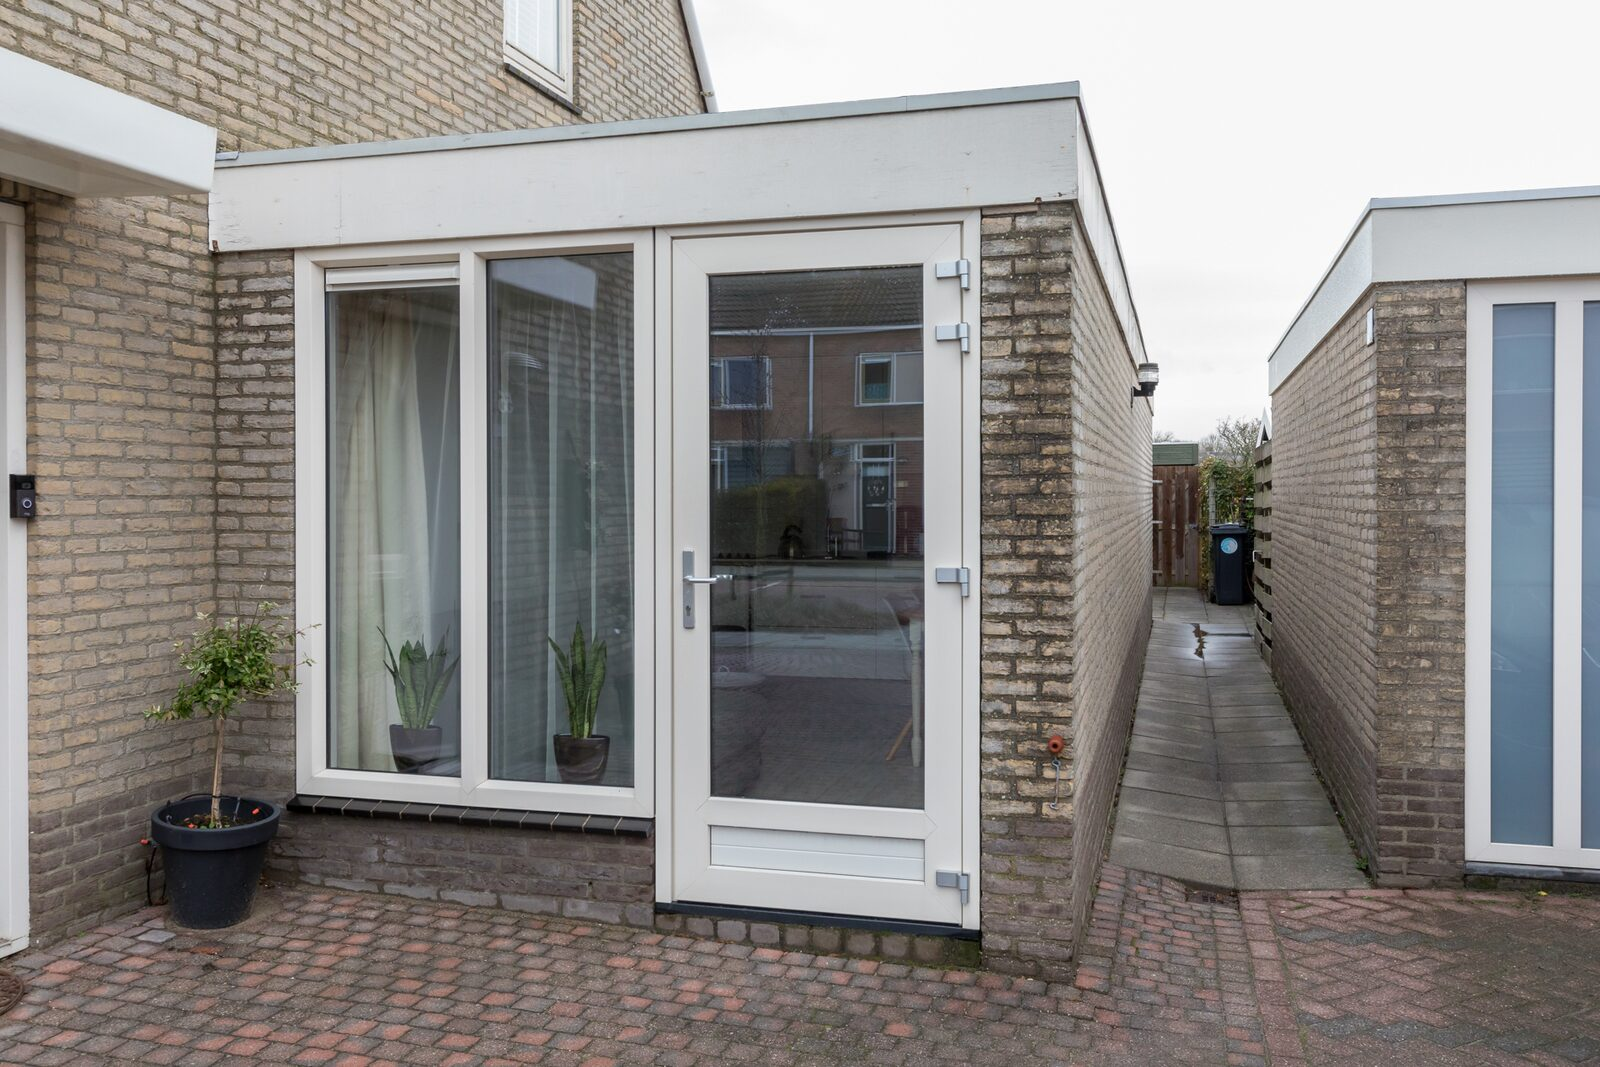 Appartment - Dr. Vaandragerstraat 5 | Domburg